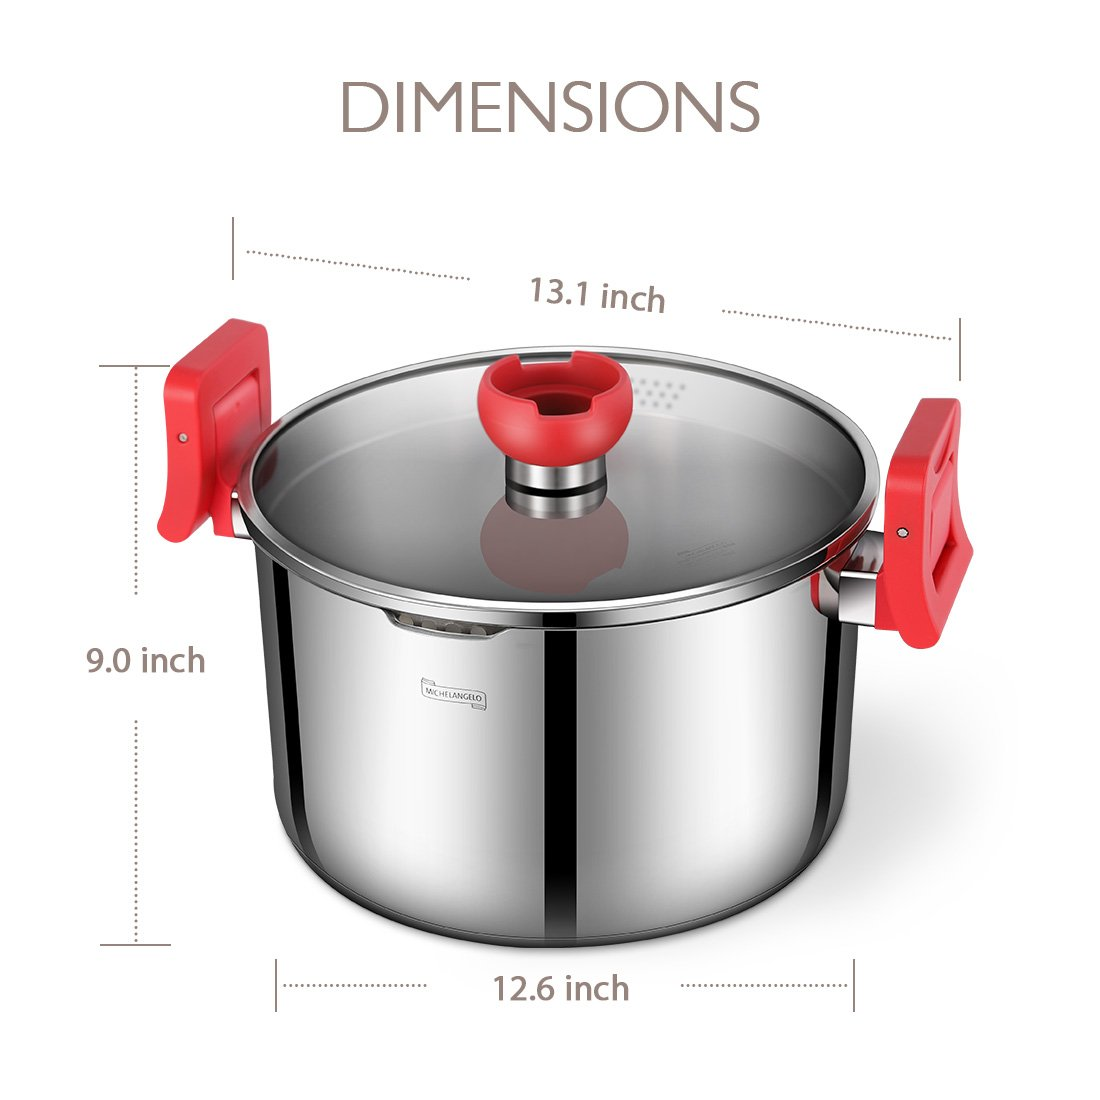 MICHELANGELO 5 Quart Pasta Pot Induction Ready, Stainless Steel Pasta Pot With Strainer Lid, Stainless Steel Dutch Oven Pot, 5 Quart Soup Pots with Lids by MICHELANGELO (Image #8)